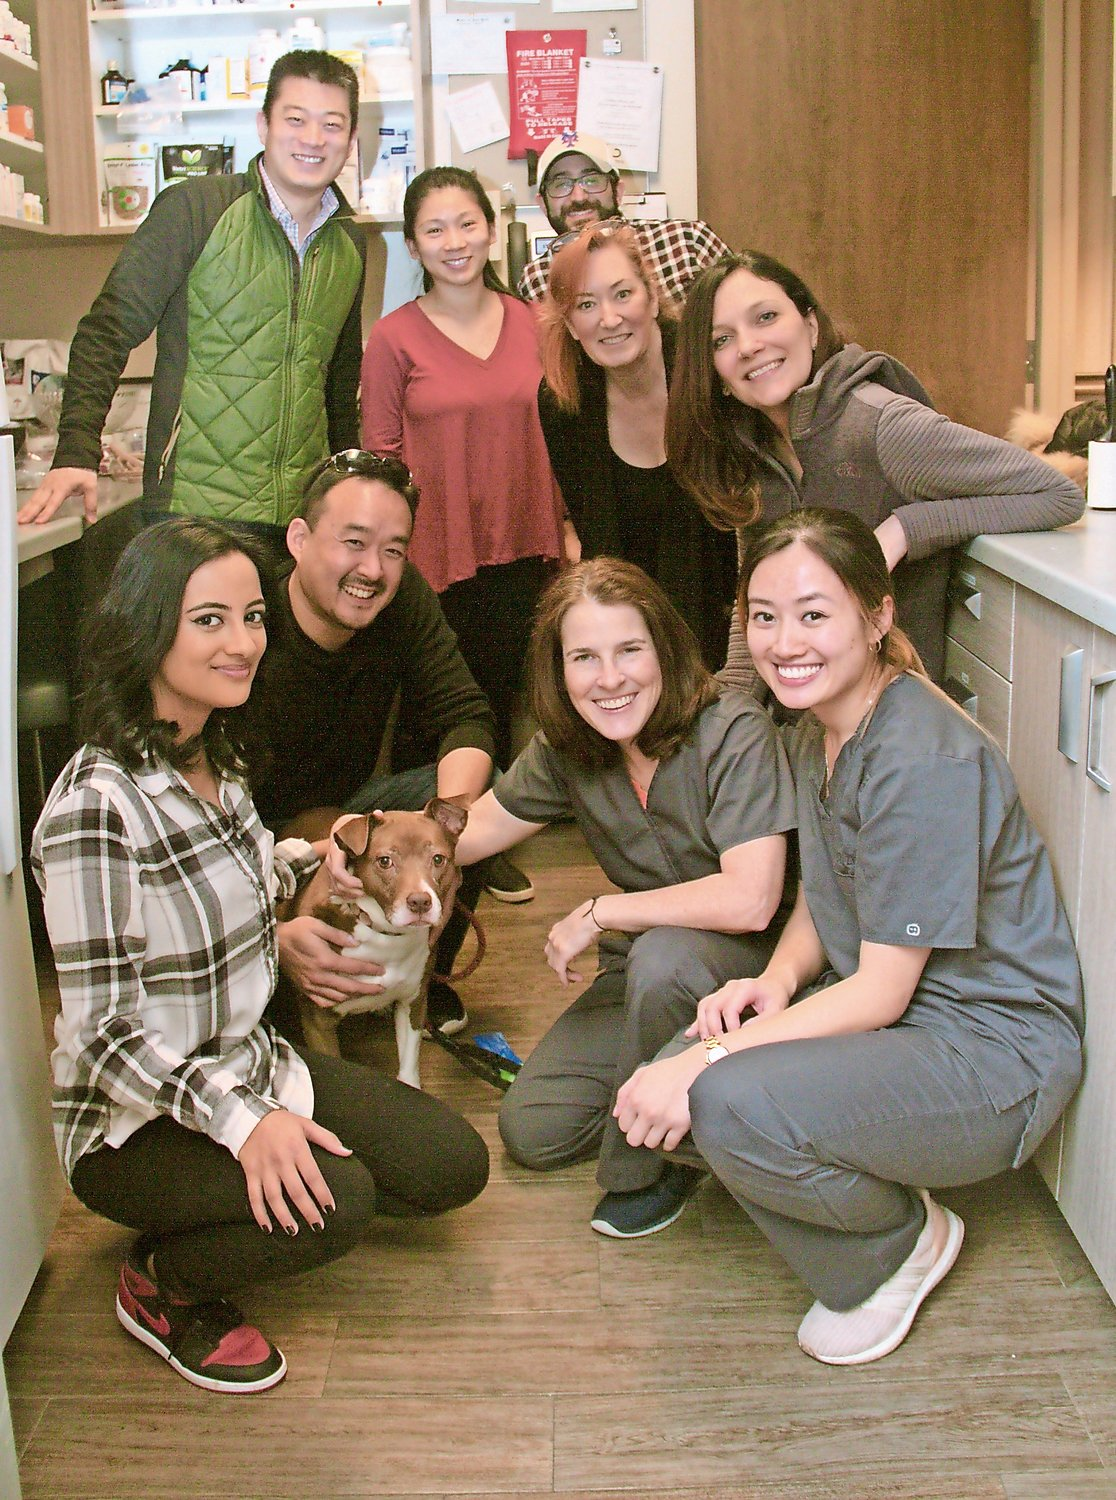 The staff at the Veterinary Care Group posed with a pit bull mix at the Pupperazzi Pawty.